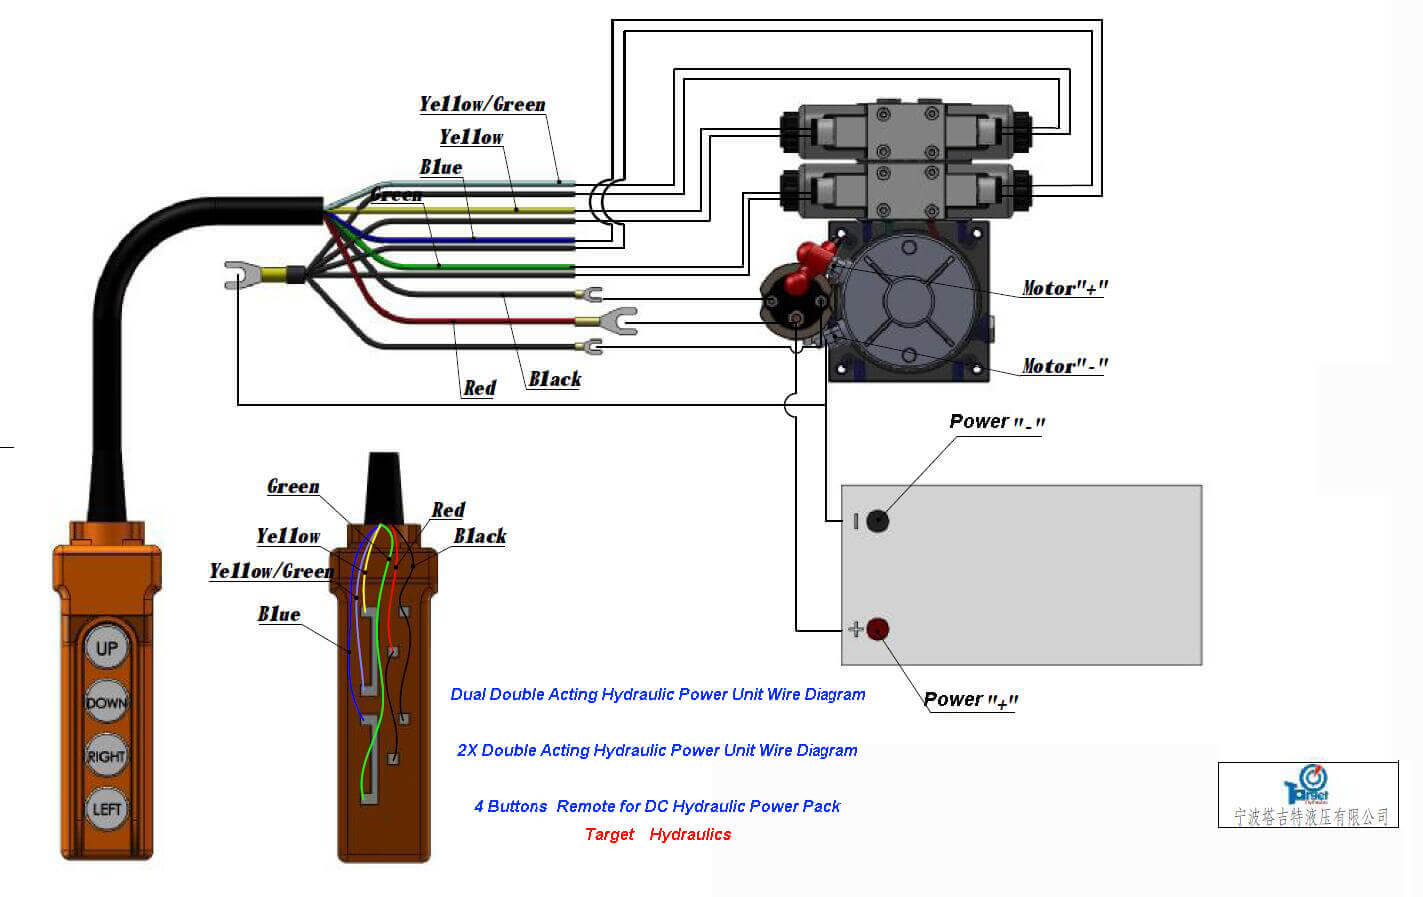 how to wire hydraulic power pack power unit diagram design rh target hydraulics com hydraulic motor wiring diagram hydraulic lift wiring diagram